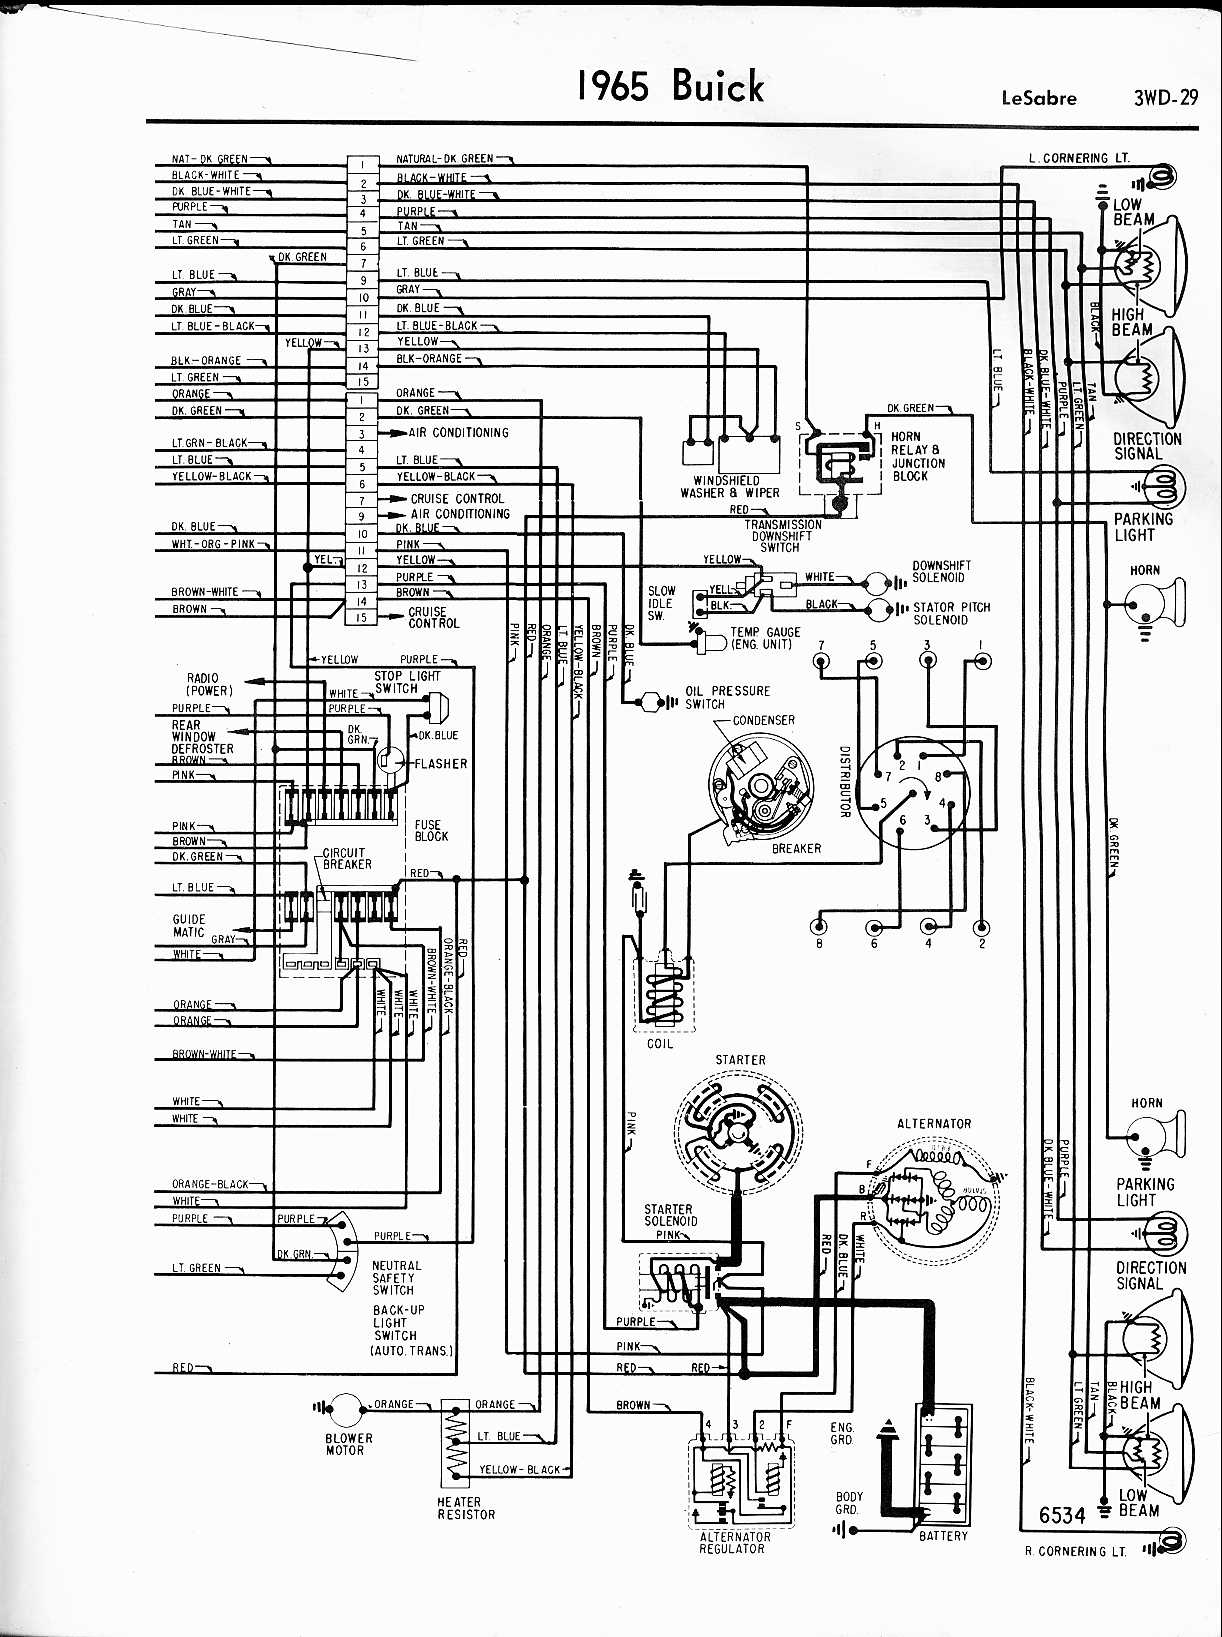 Fantastic Datsun Roadster Wiring Diagram Get Free Image About Wiring Diagram Wiring Cloud Waroletkolfr09Org